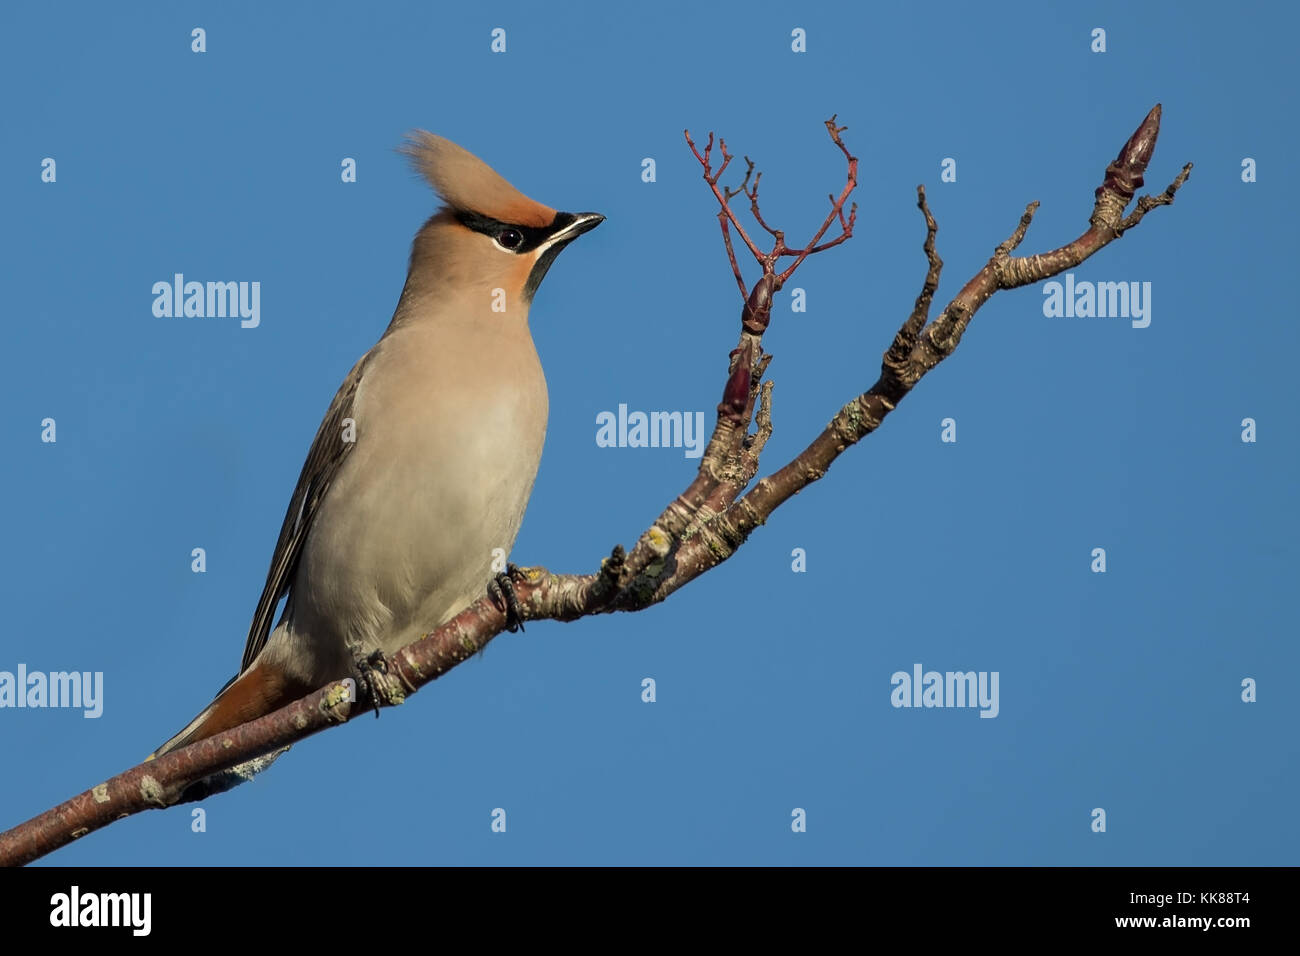 Waxwing (Bombycilla garrulus) In tree feeding on Berries In UK, England - Stock Image